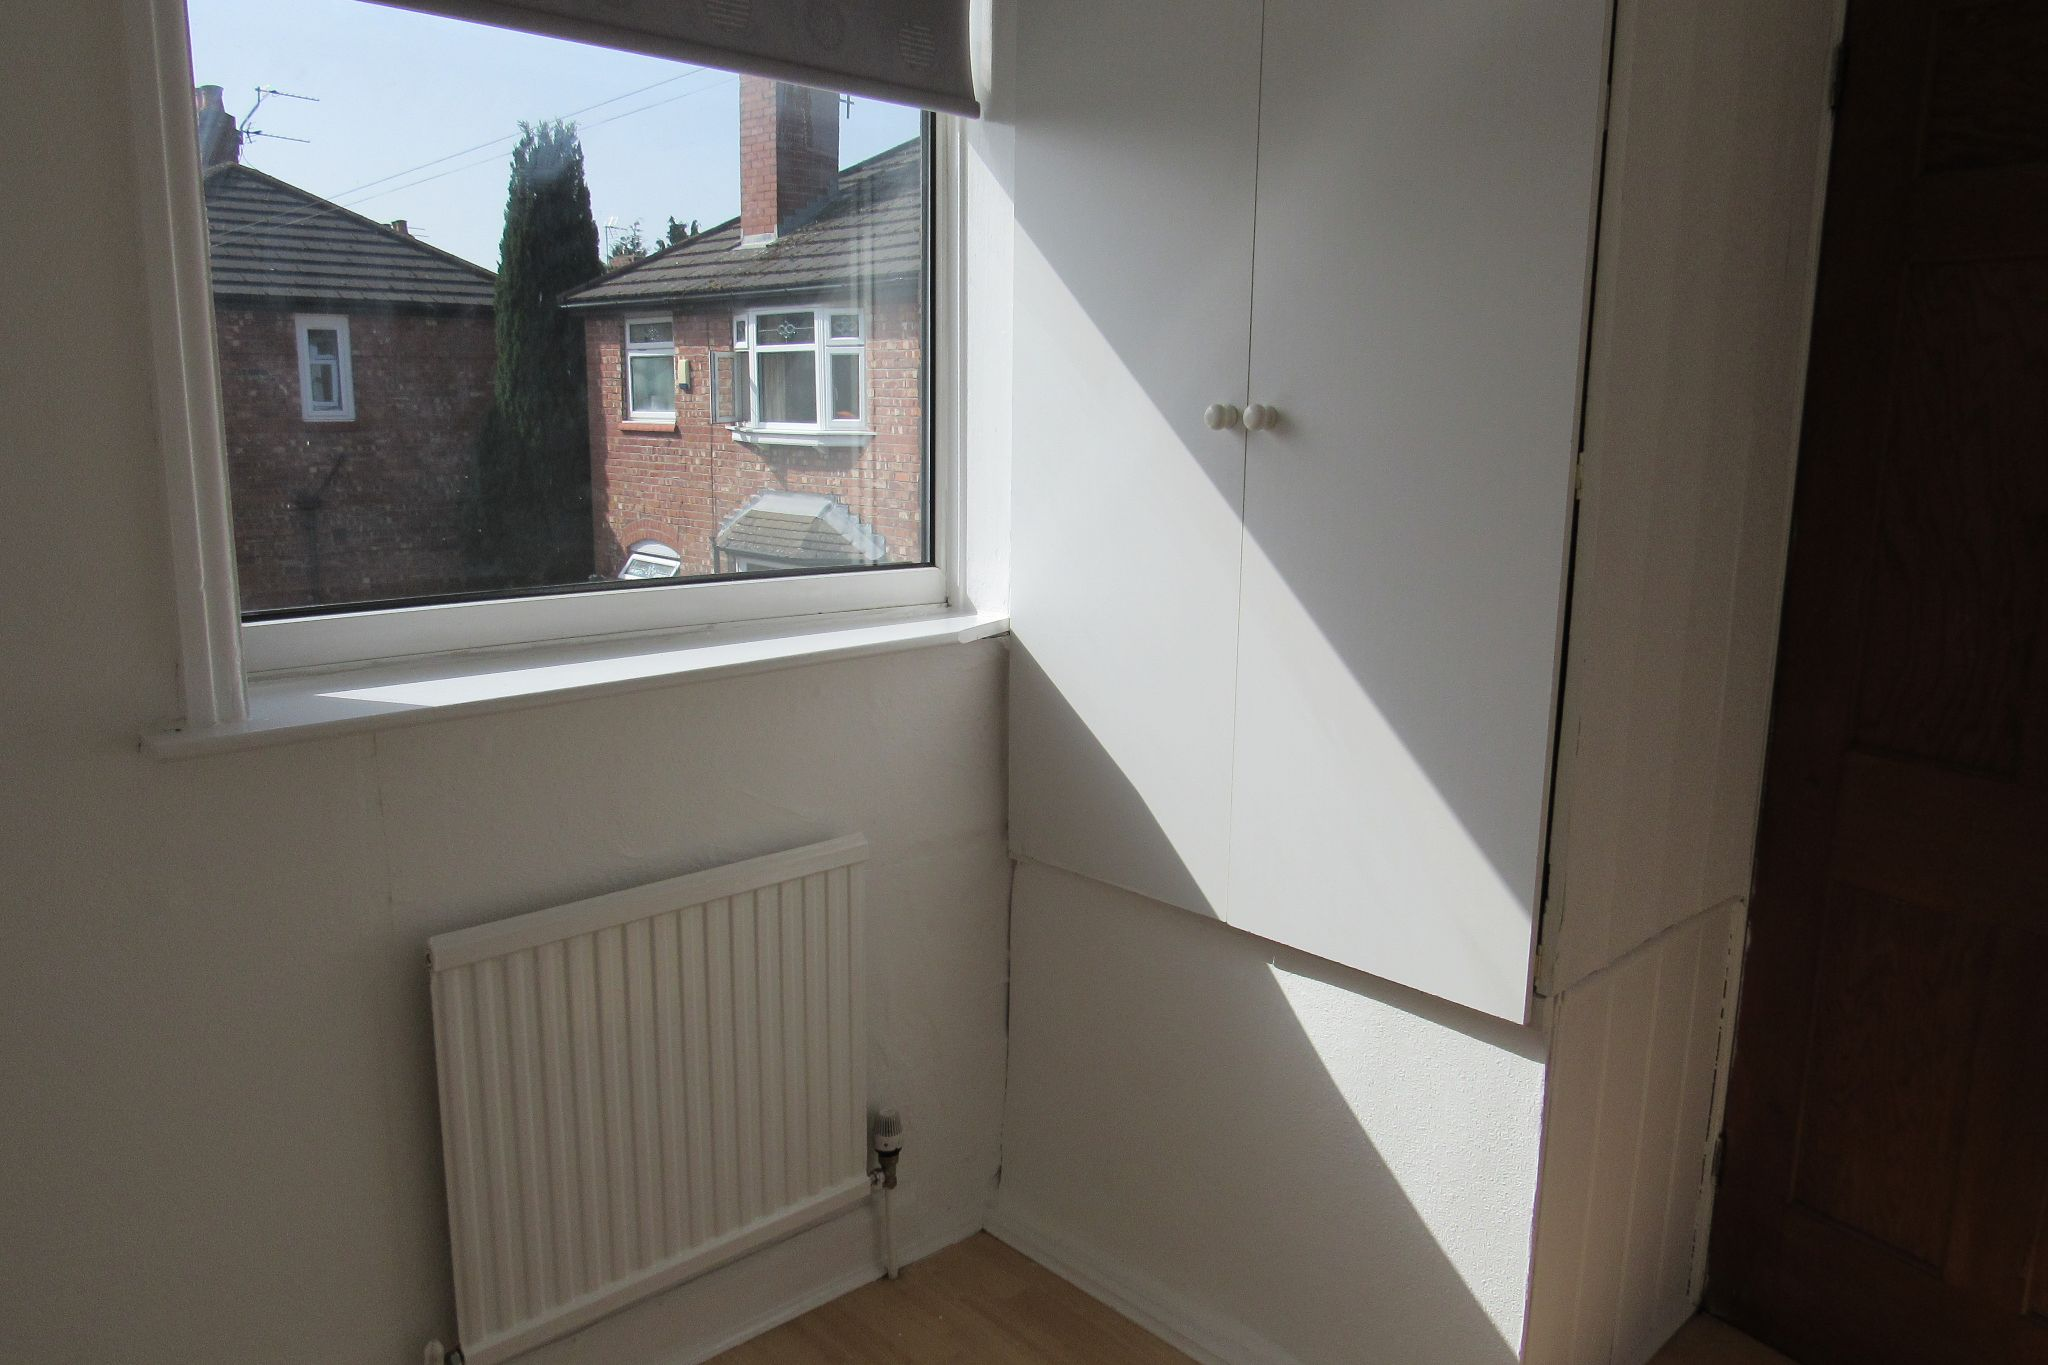 3 bedroom end terraced house SSTC in Manchester - Photograph 20.